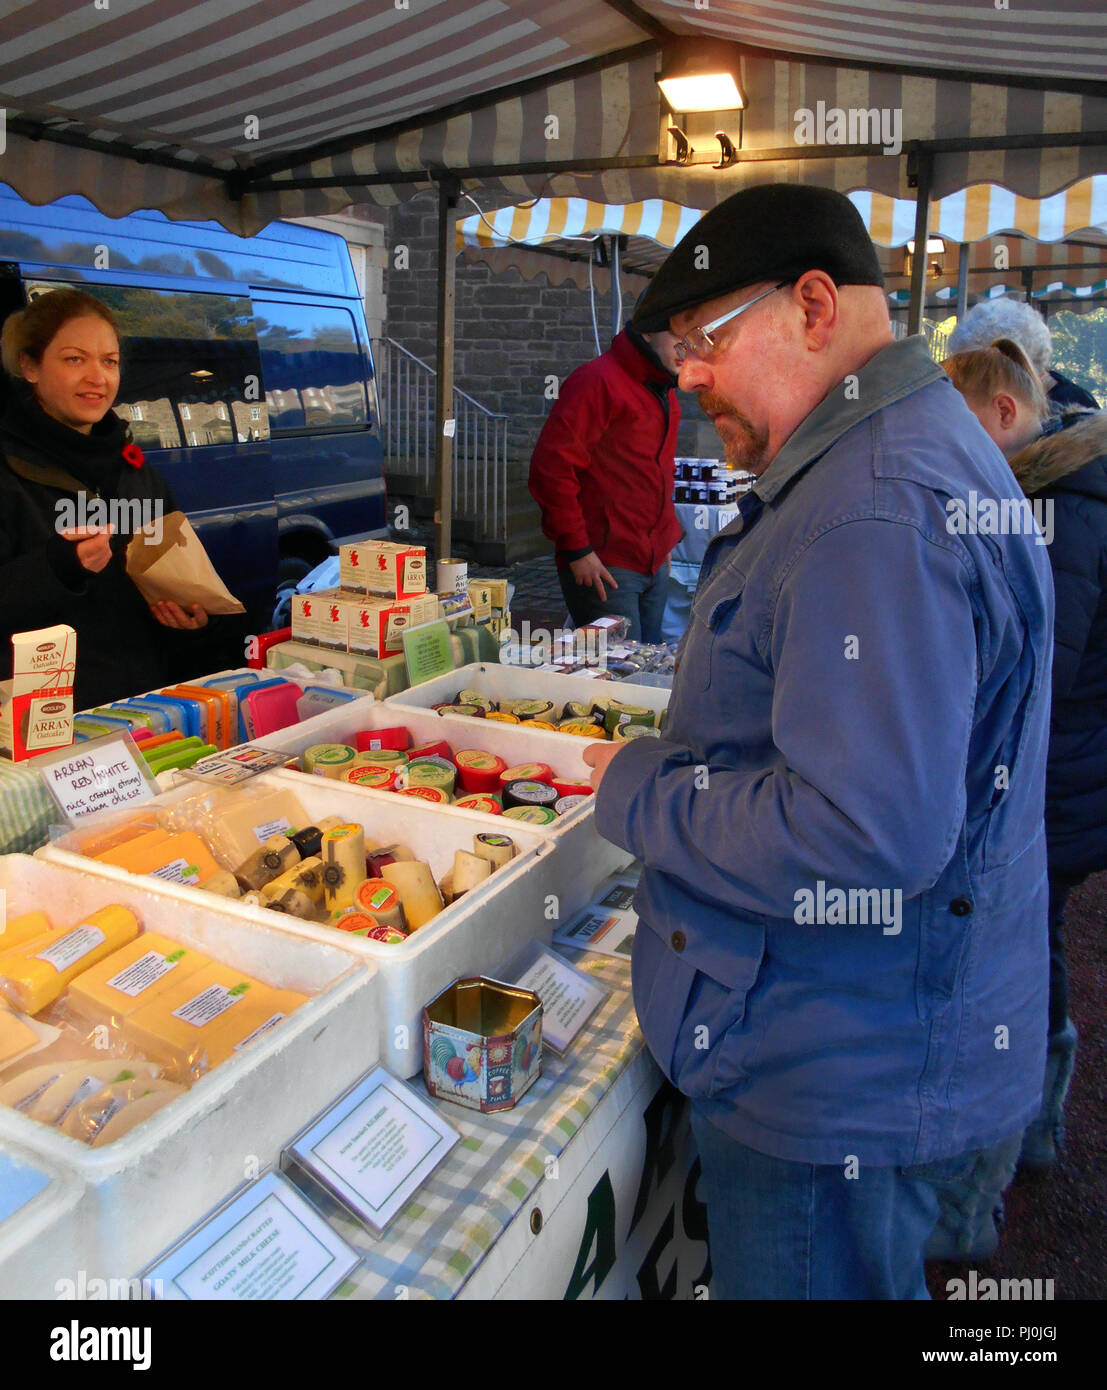 A customer looking to buy some local, and artisan, cheese at an open air food fair in New Lanark, Scotland. - Stock Image